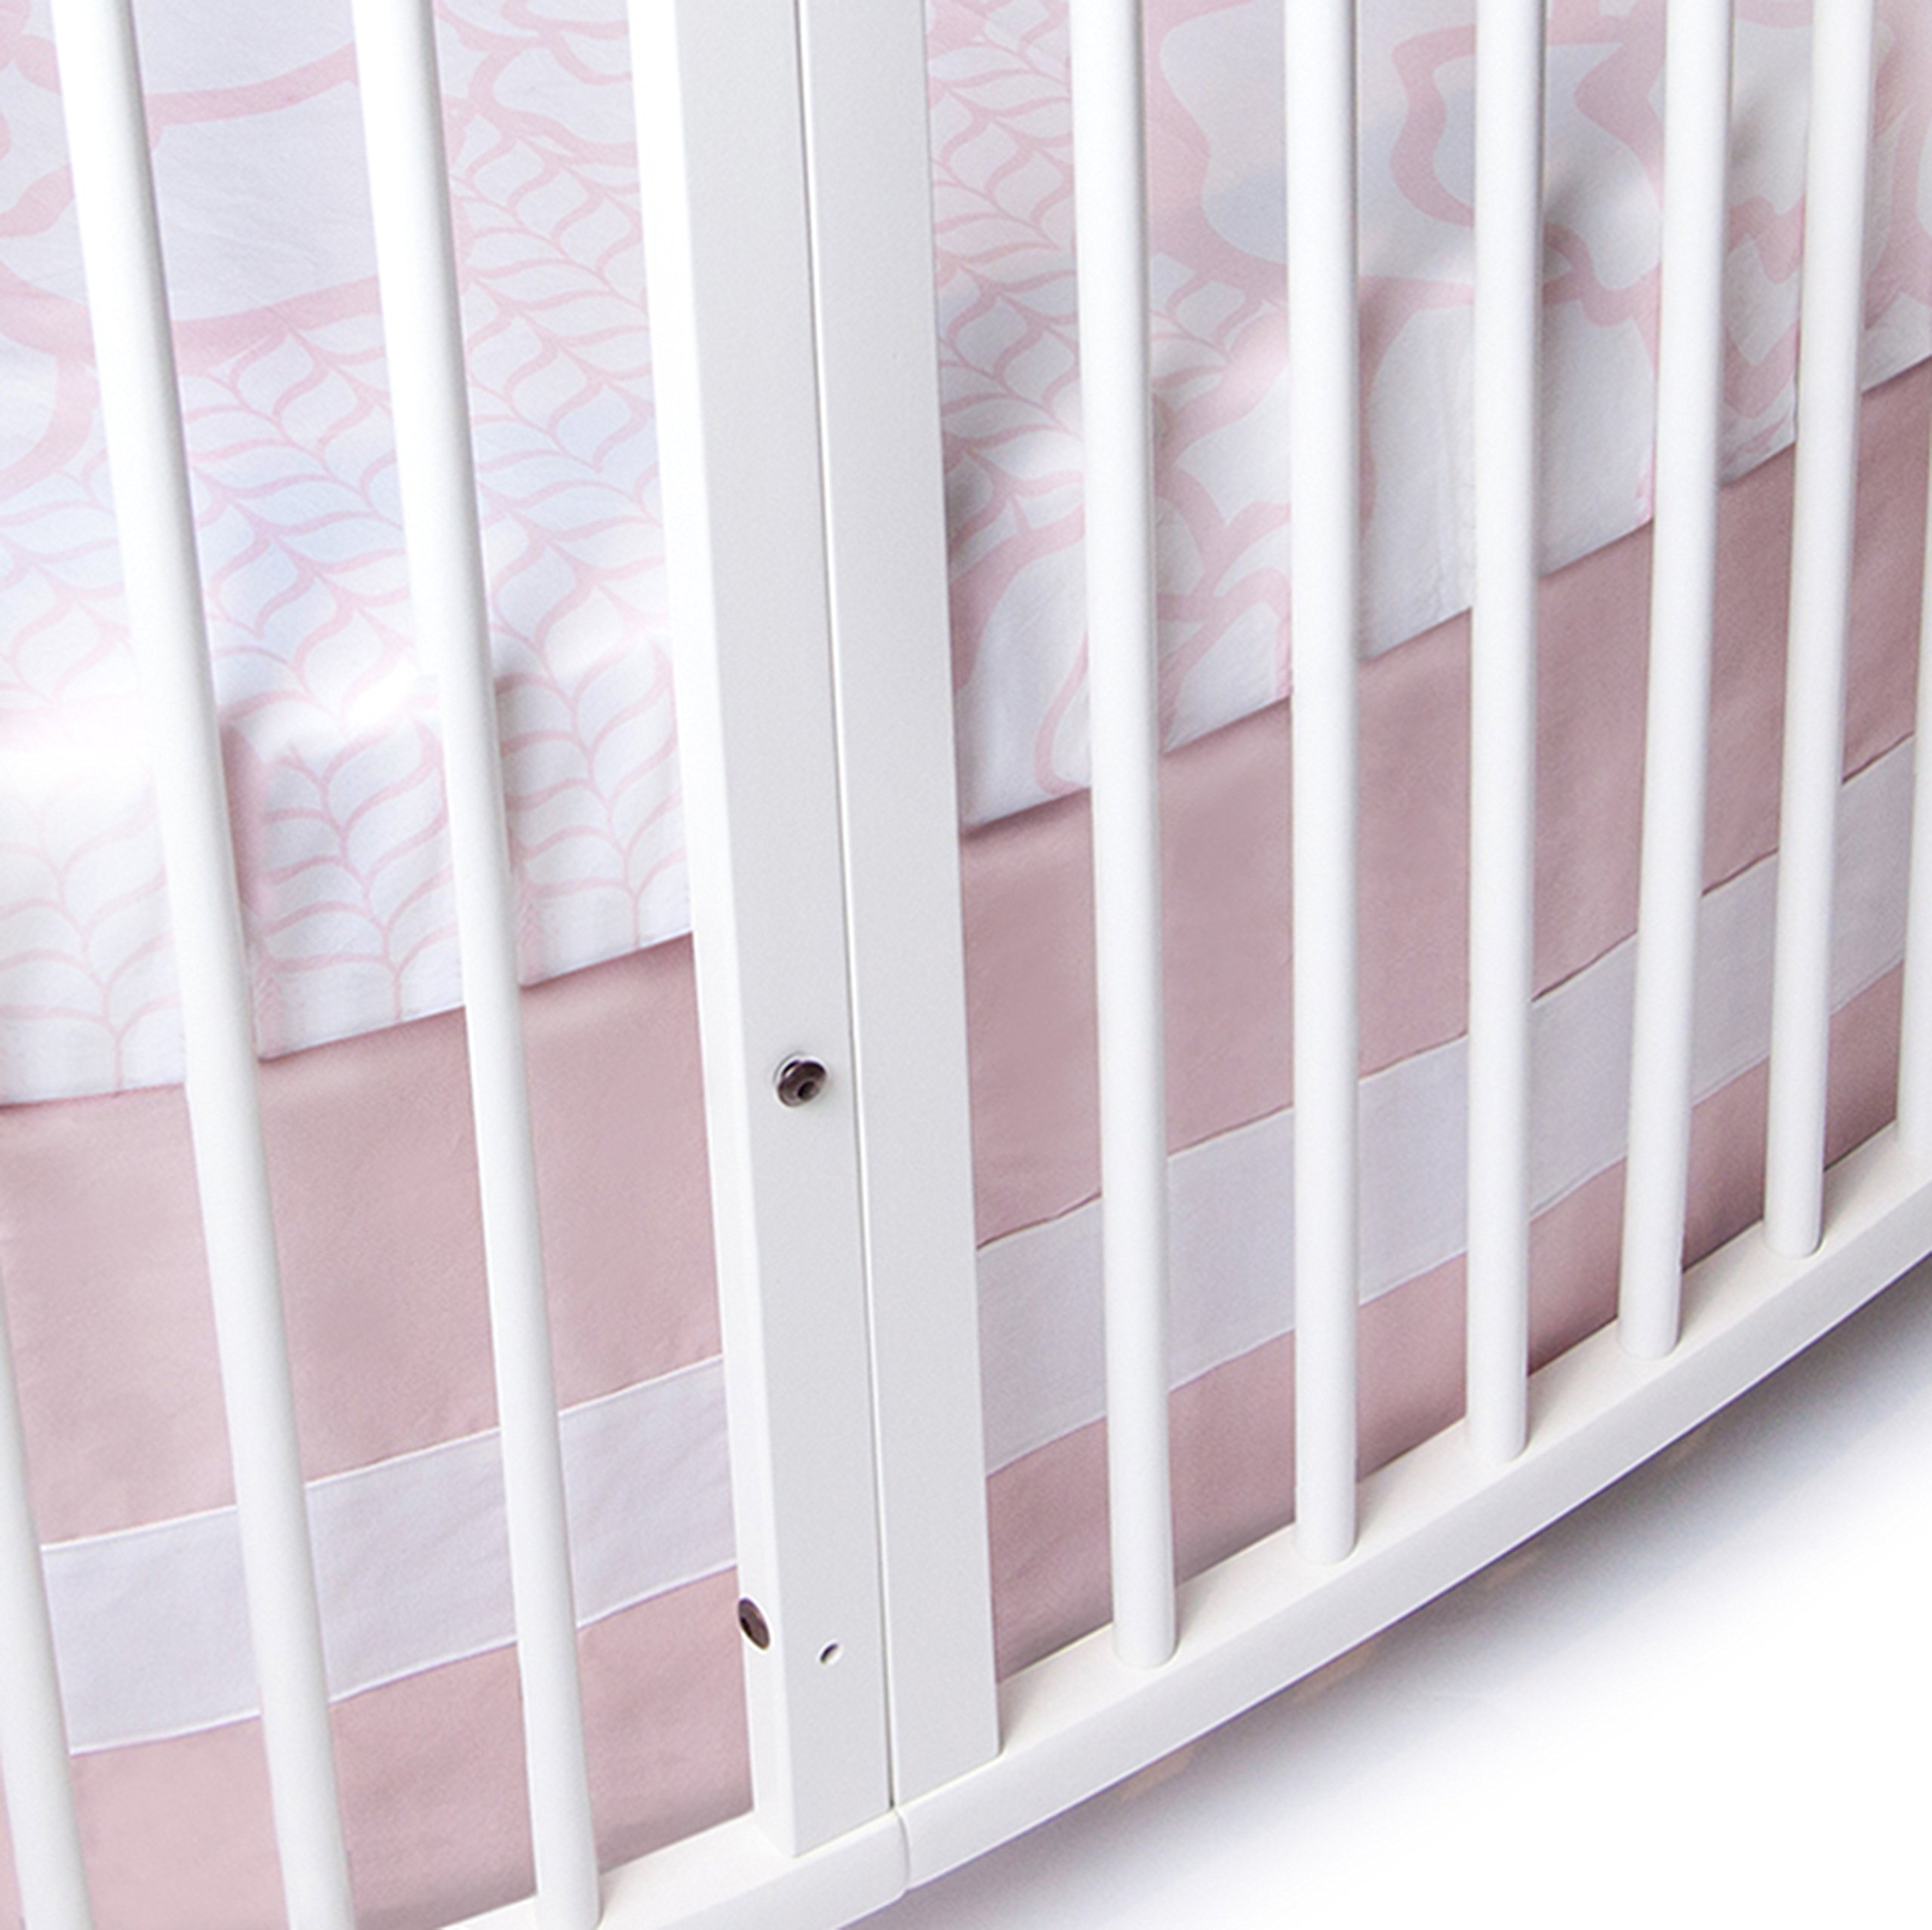 Oilo Stokke Sleepi Woven Band Crib Skirt, Blush